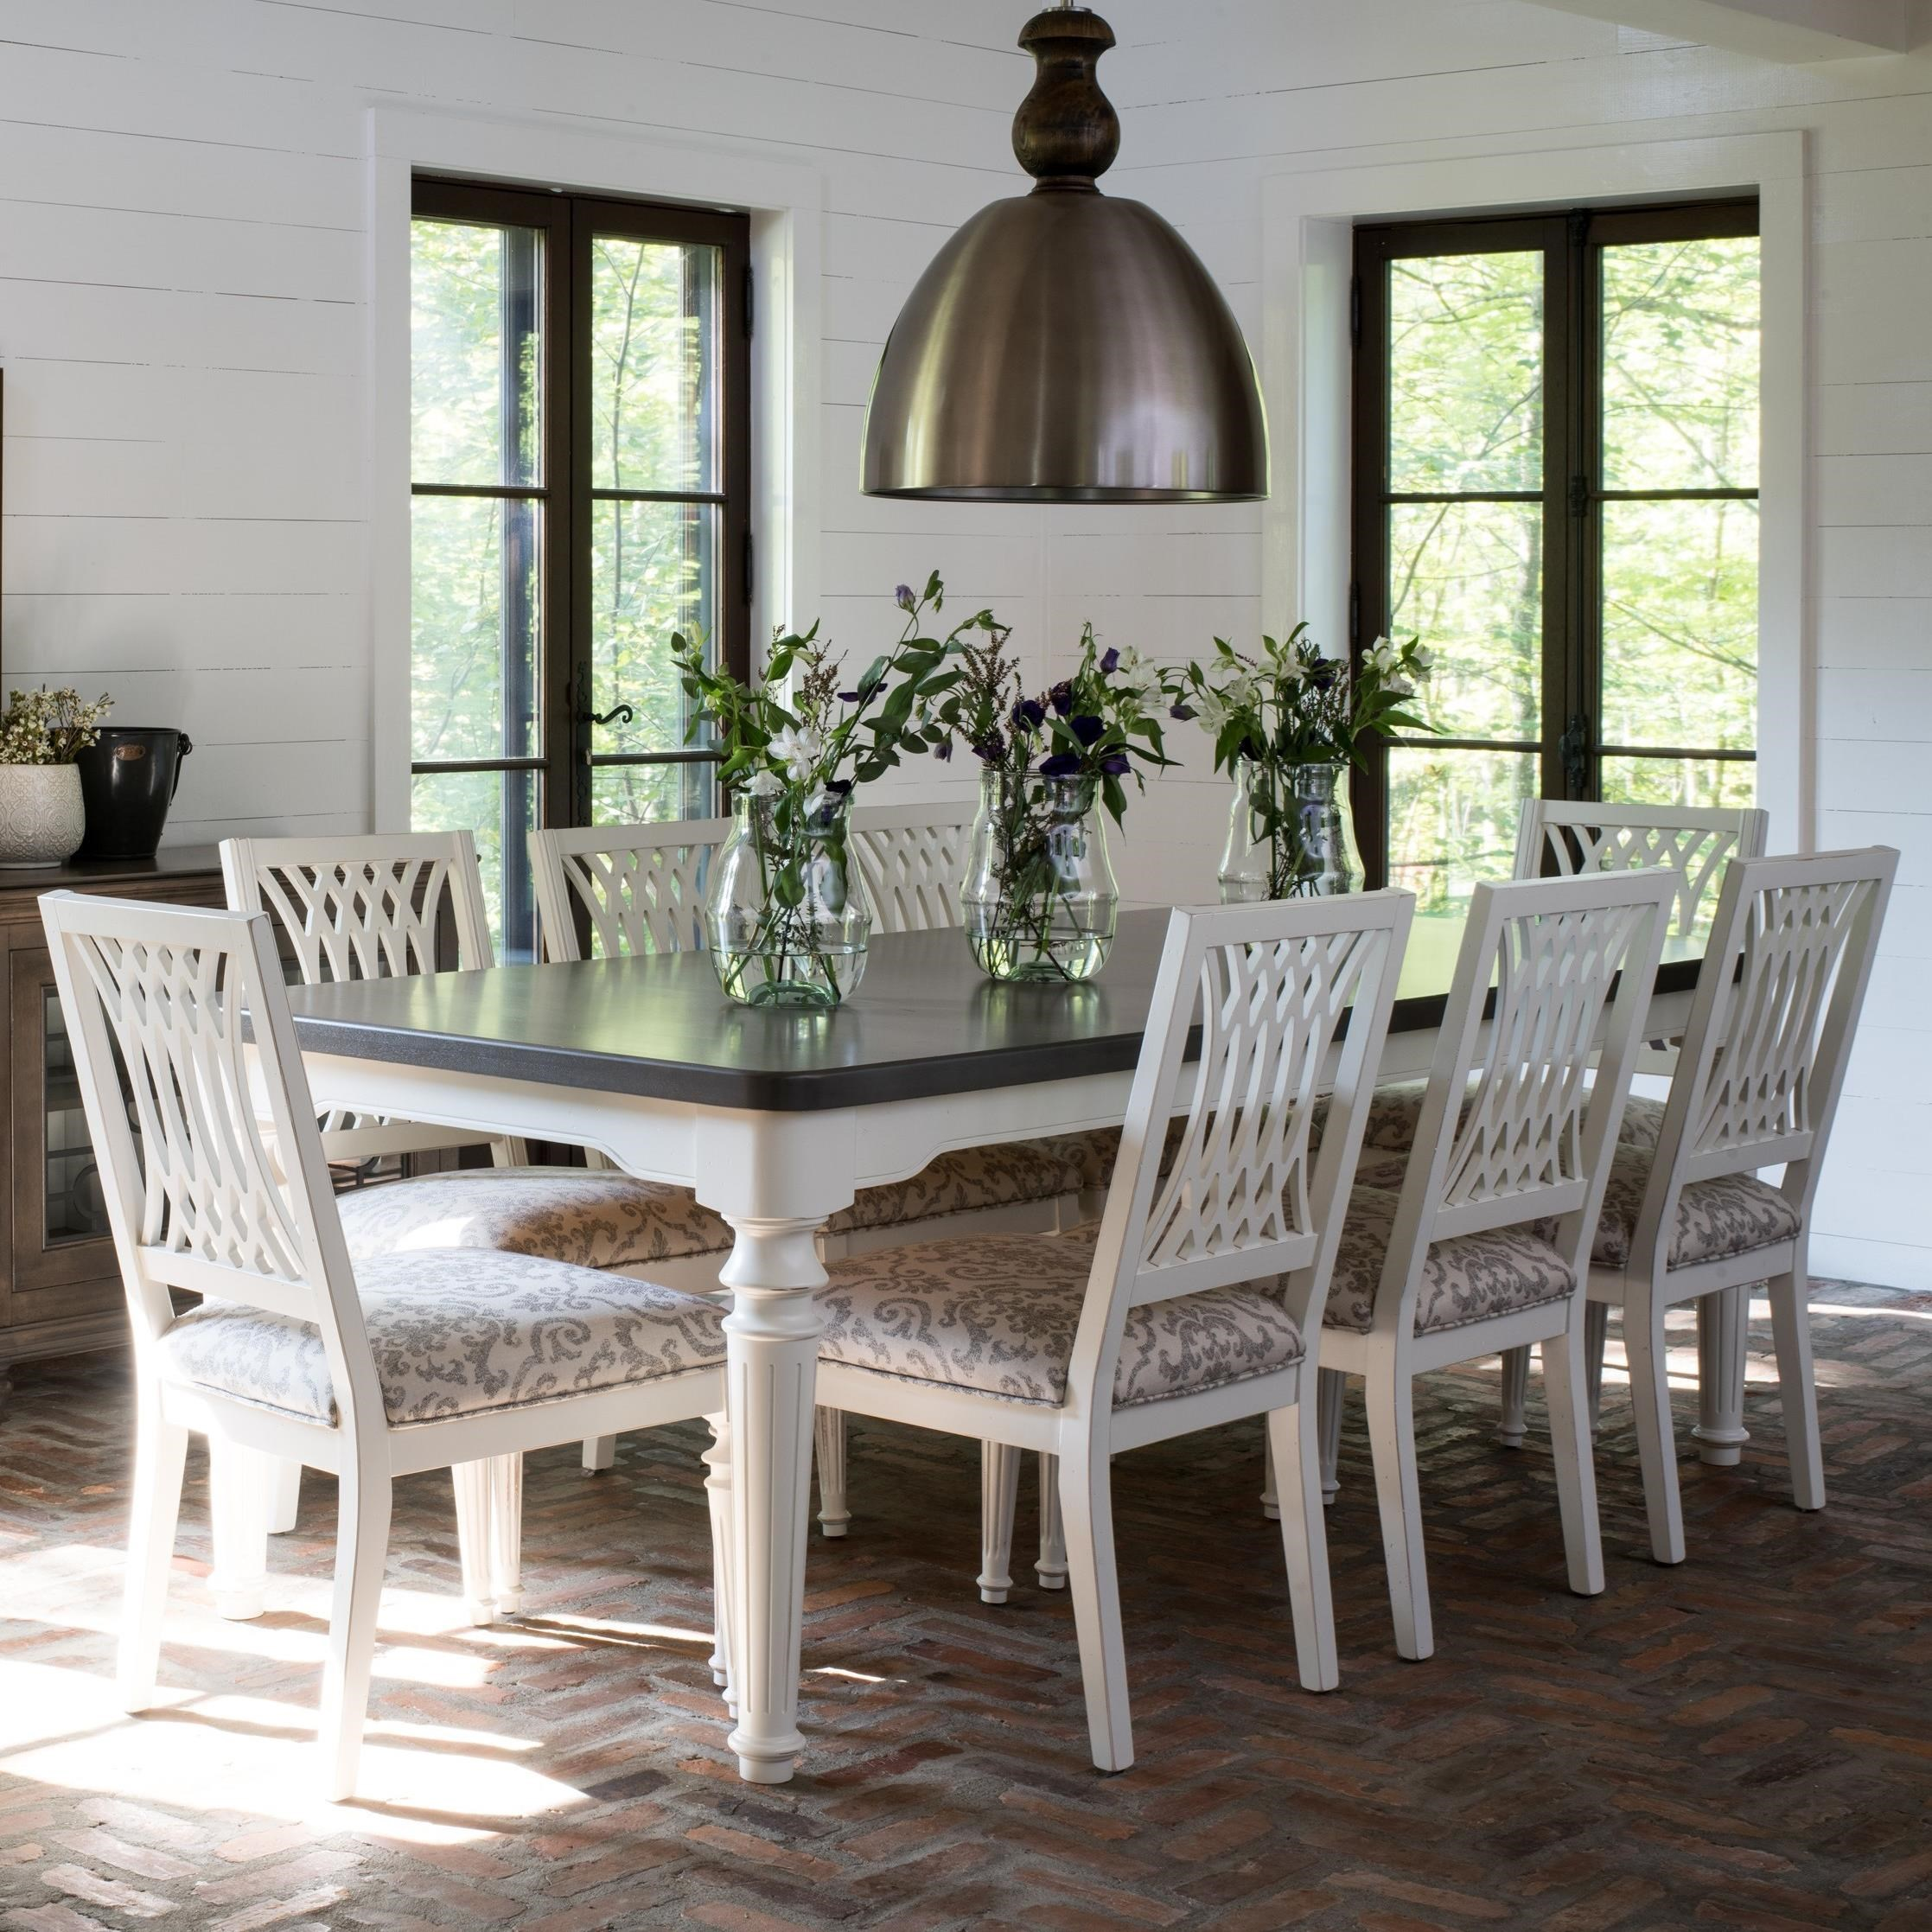 Farmhouse Customizable Dining Table Set by Canadel at Dinette Depot